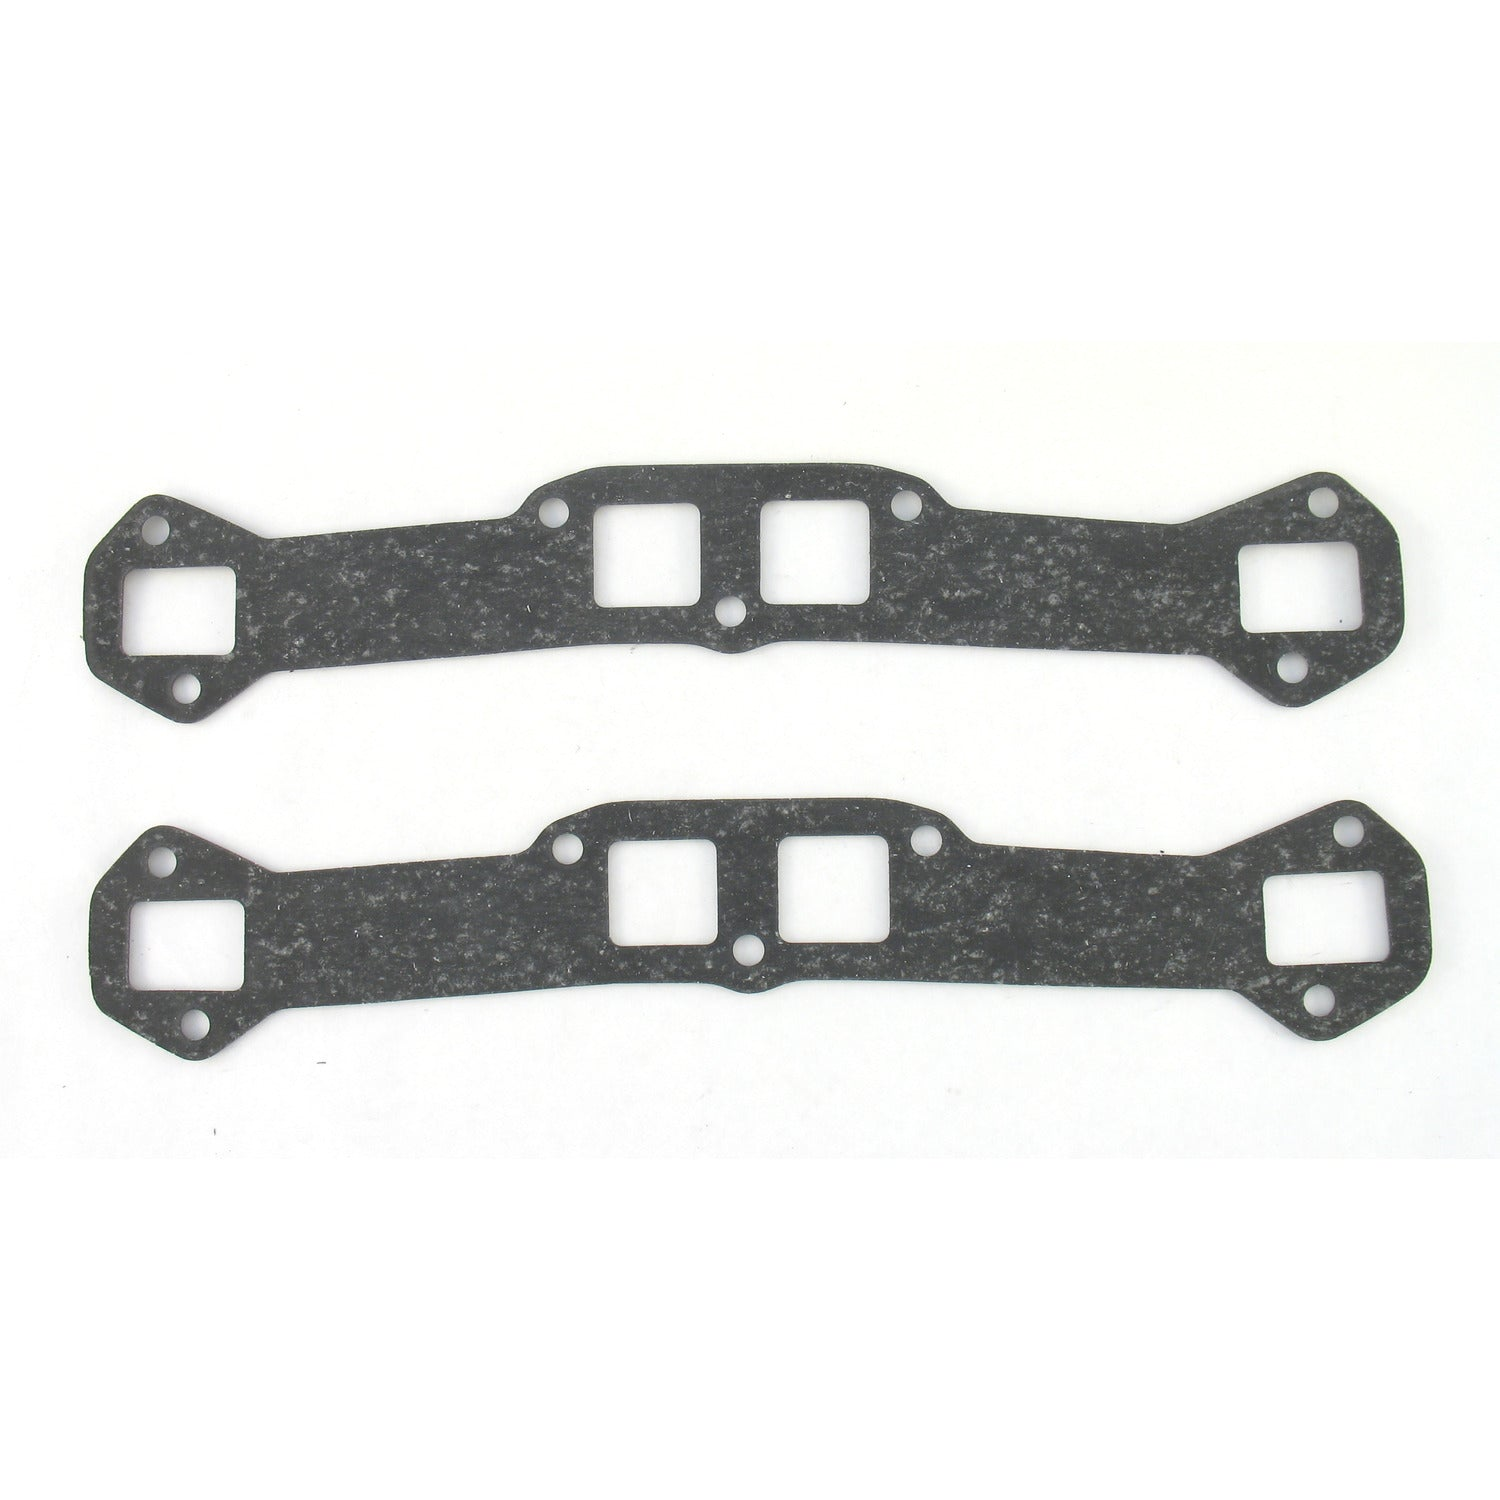 Doug's Headers HG9348 Chevrolet 348-409 rectangle port  Header Flange Gaskets